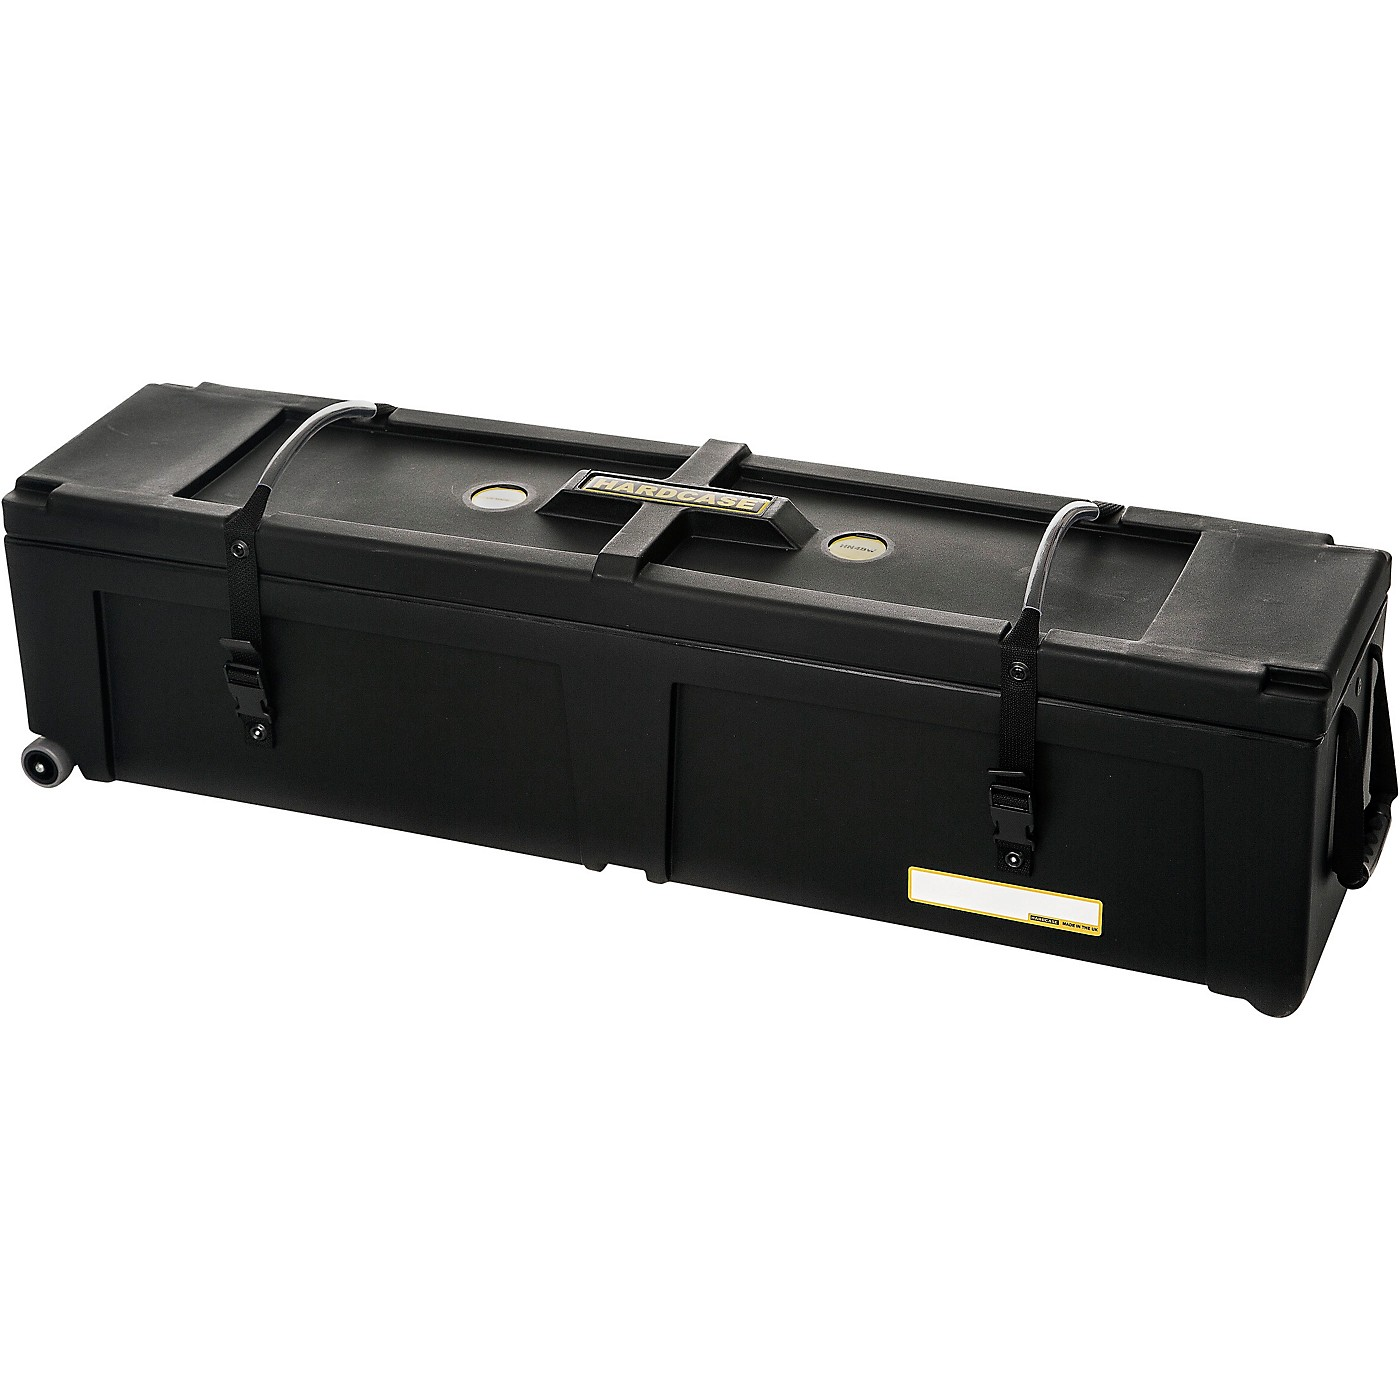 HARDCASE 48 x 12 x 12 in. Hardware Case with Two Wheels thumbnail